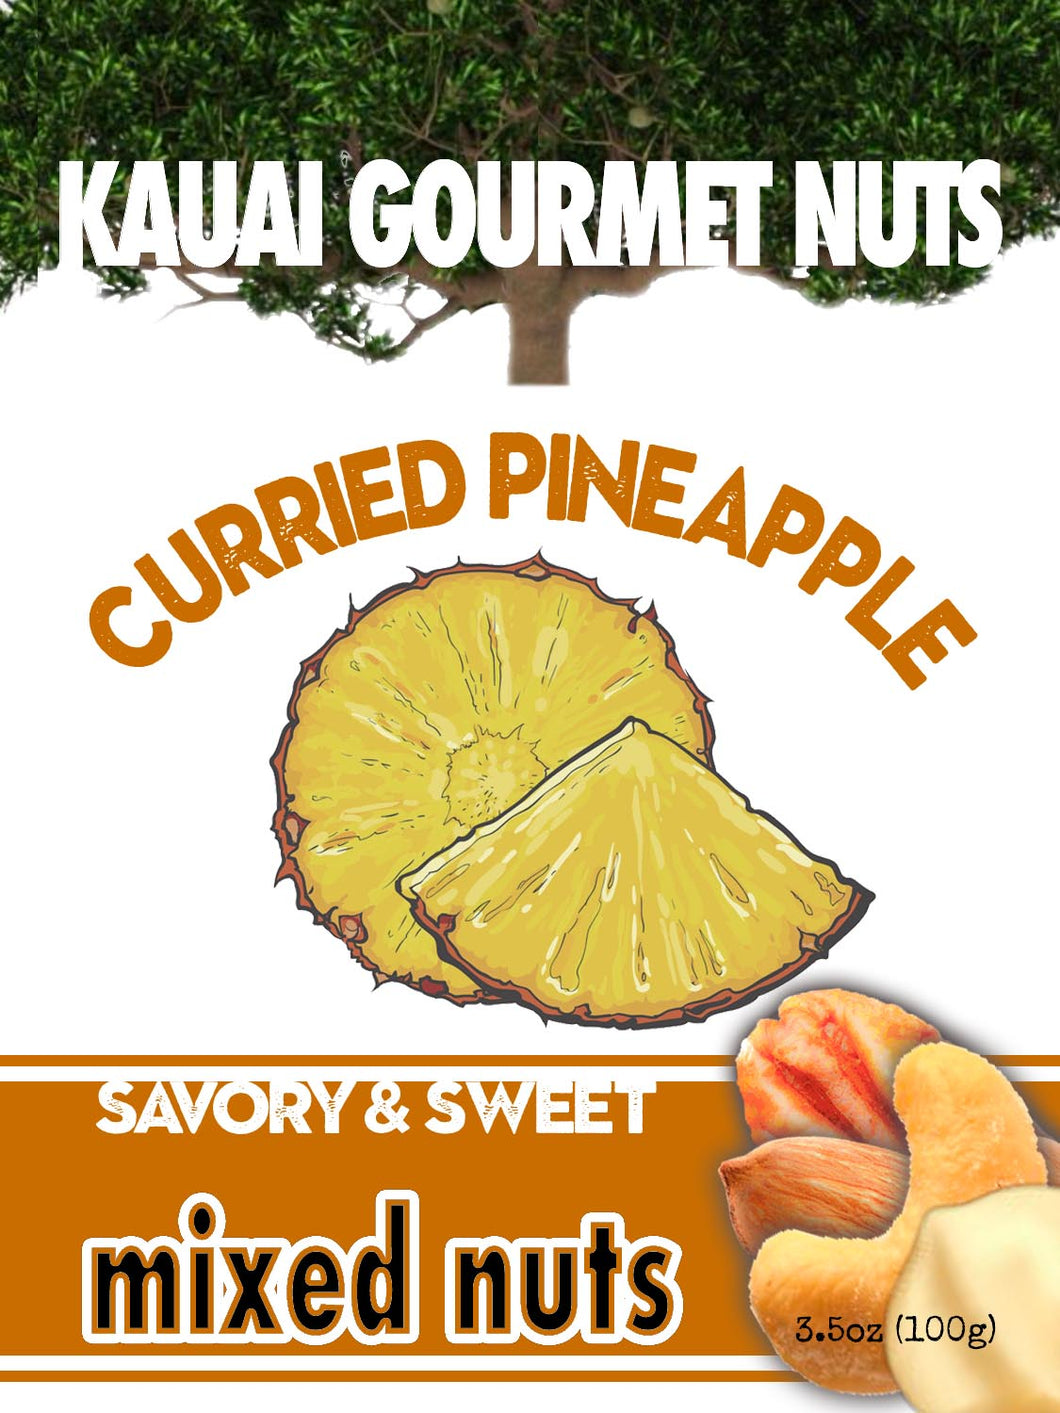 Curried Pineapple Mixed Nuts Kauai Macadamias Pecans Almonds Cashews Hawaii Pineapple Hawaiian Curry Roasted Nut Roasters